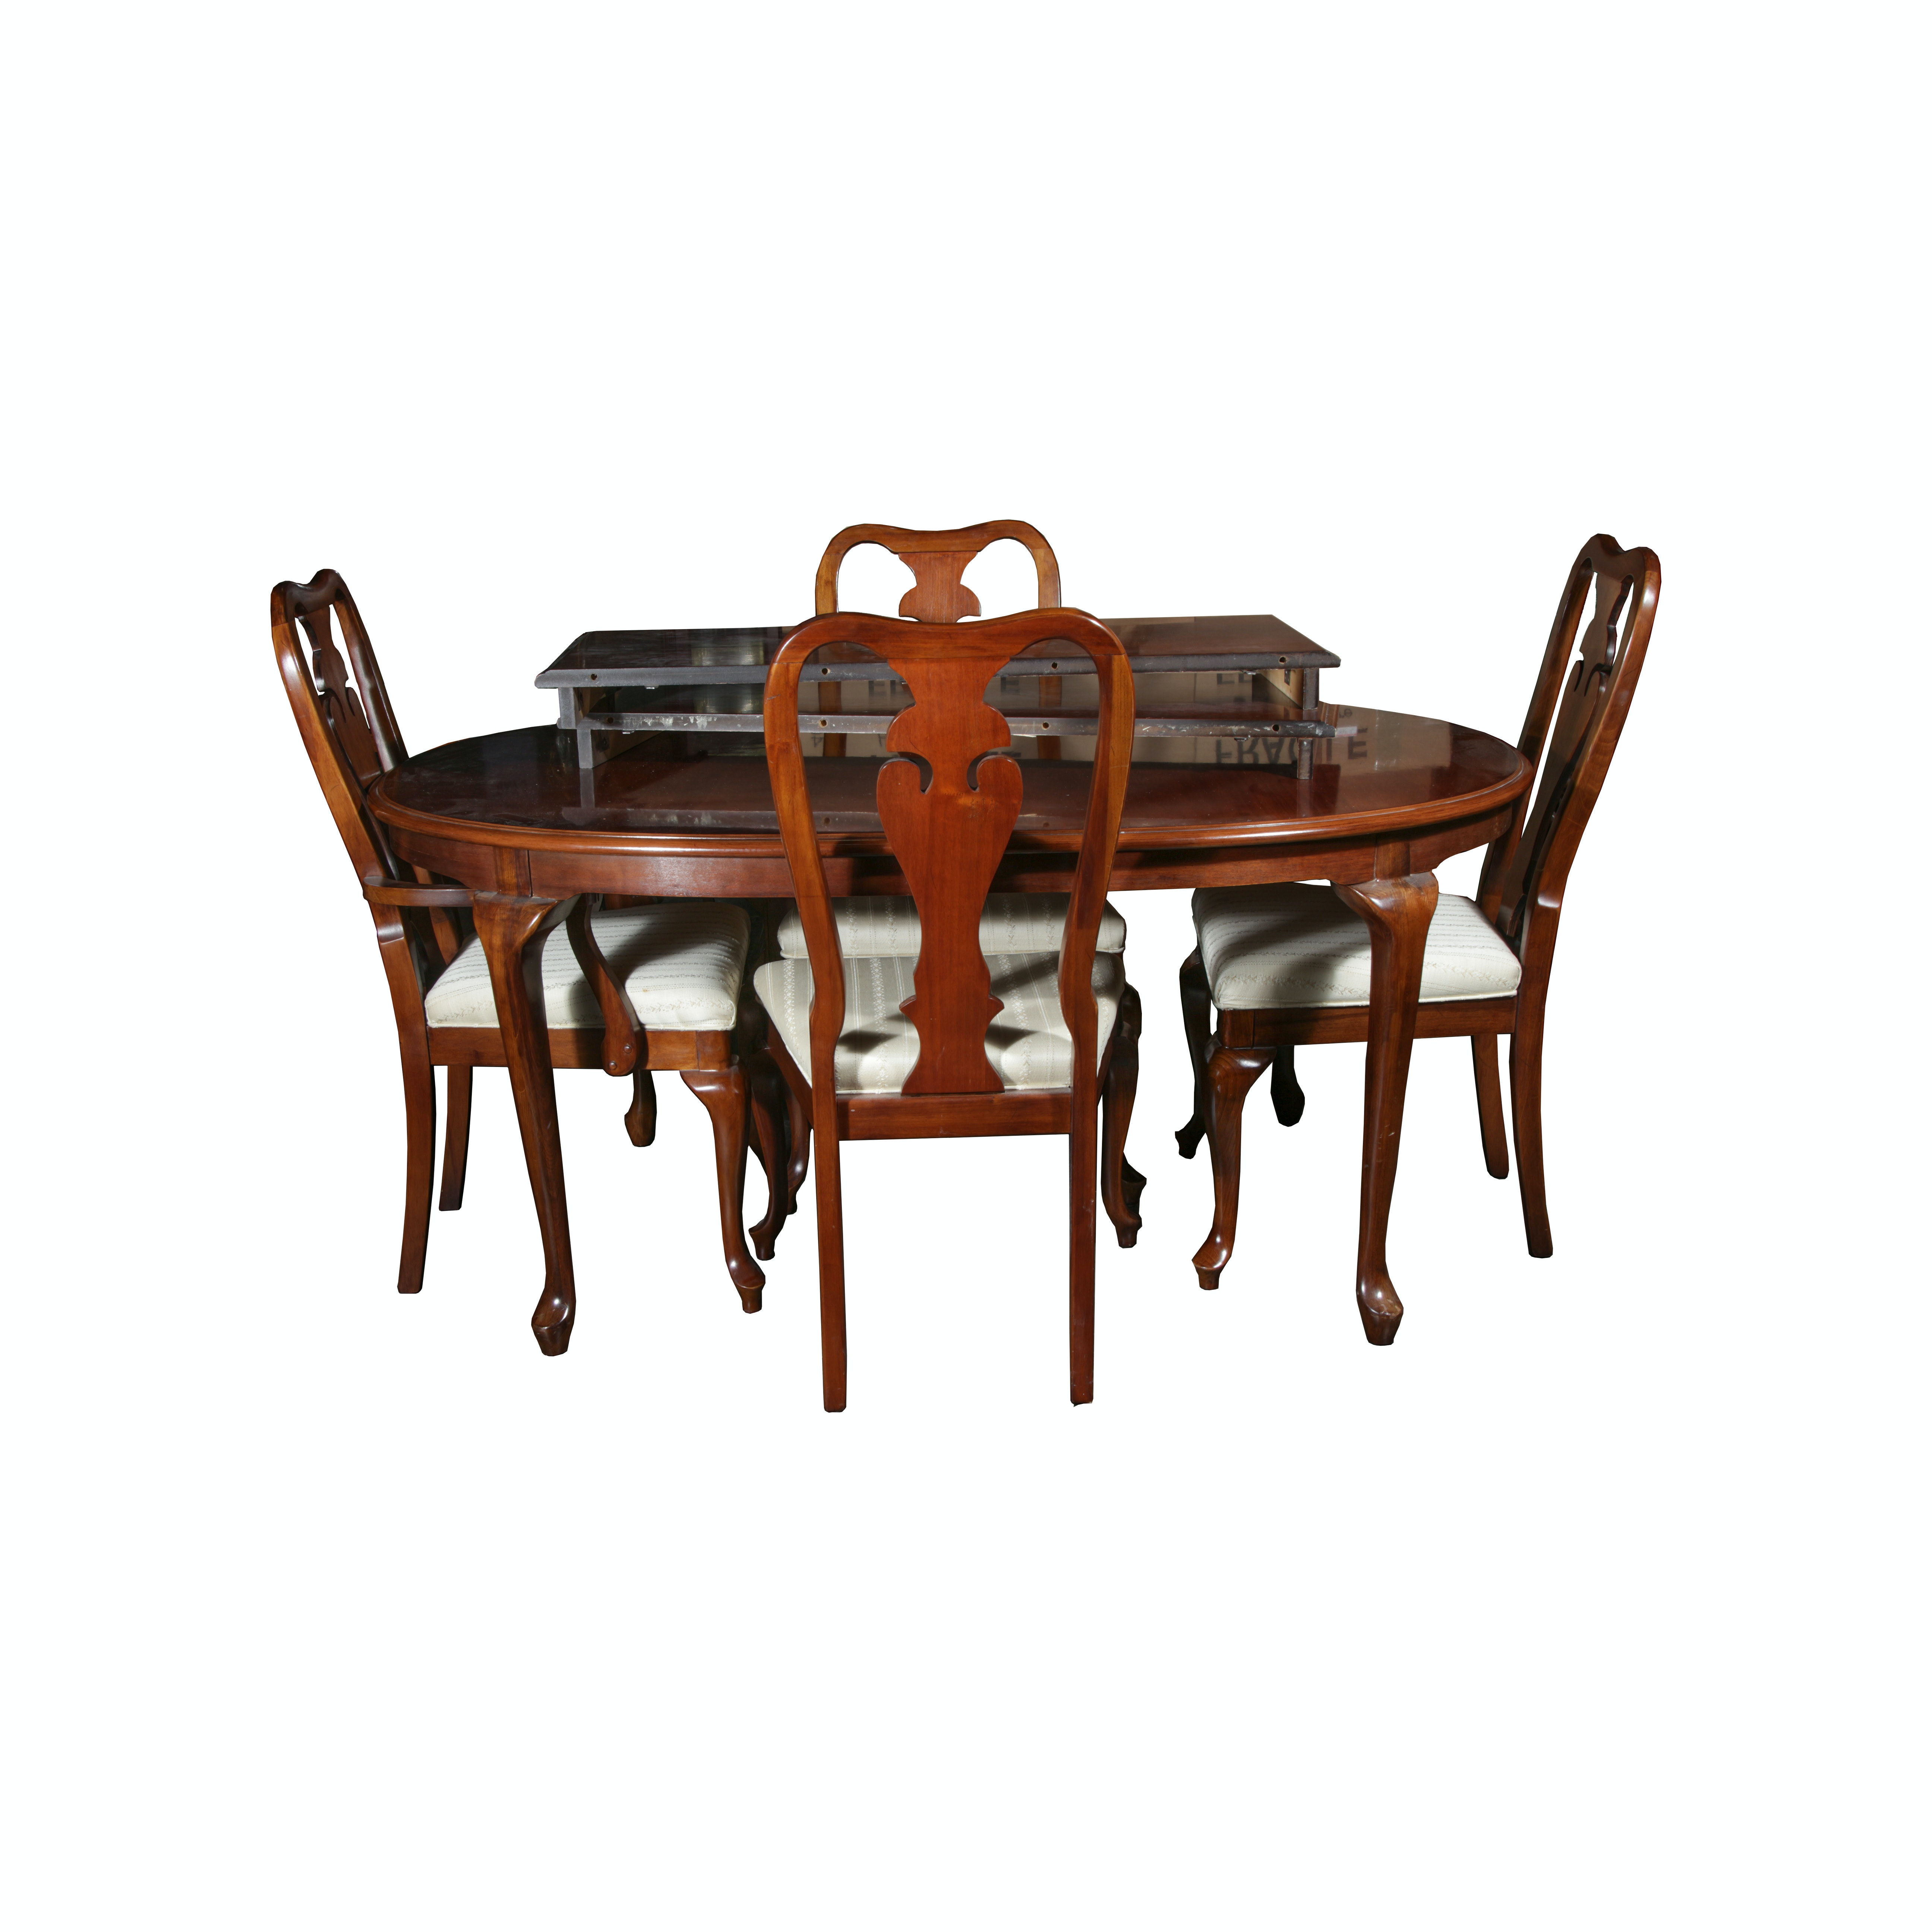 Queen Anne Style Table And Chairs : IMG5839JPGixlibu003drb 11 from fremode.com size 5184 x 5184 jpeg 1621kB